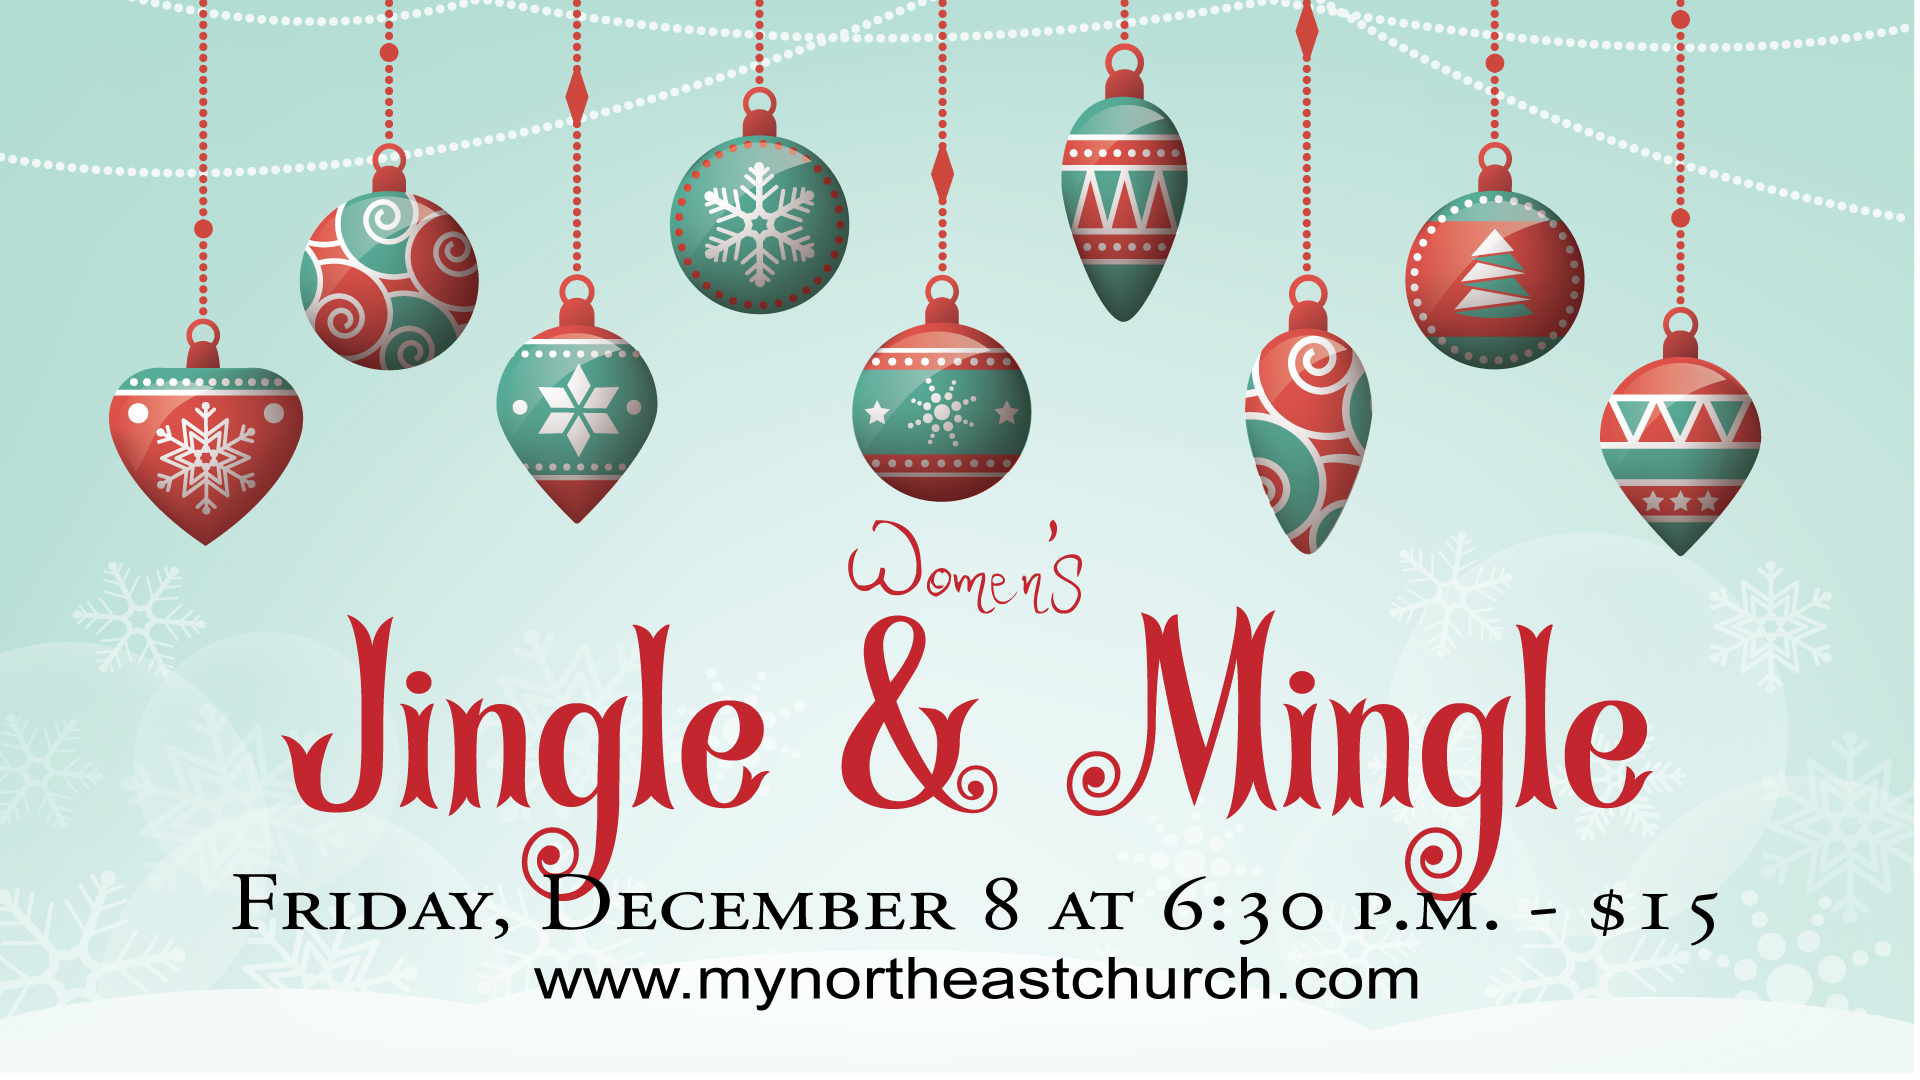 Women's Jingle & Mingle